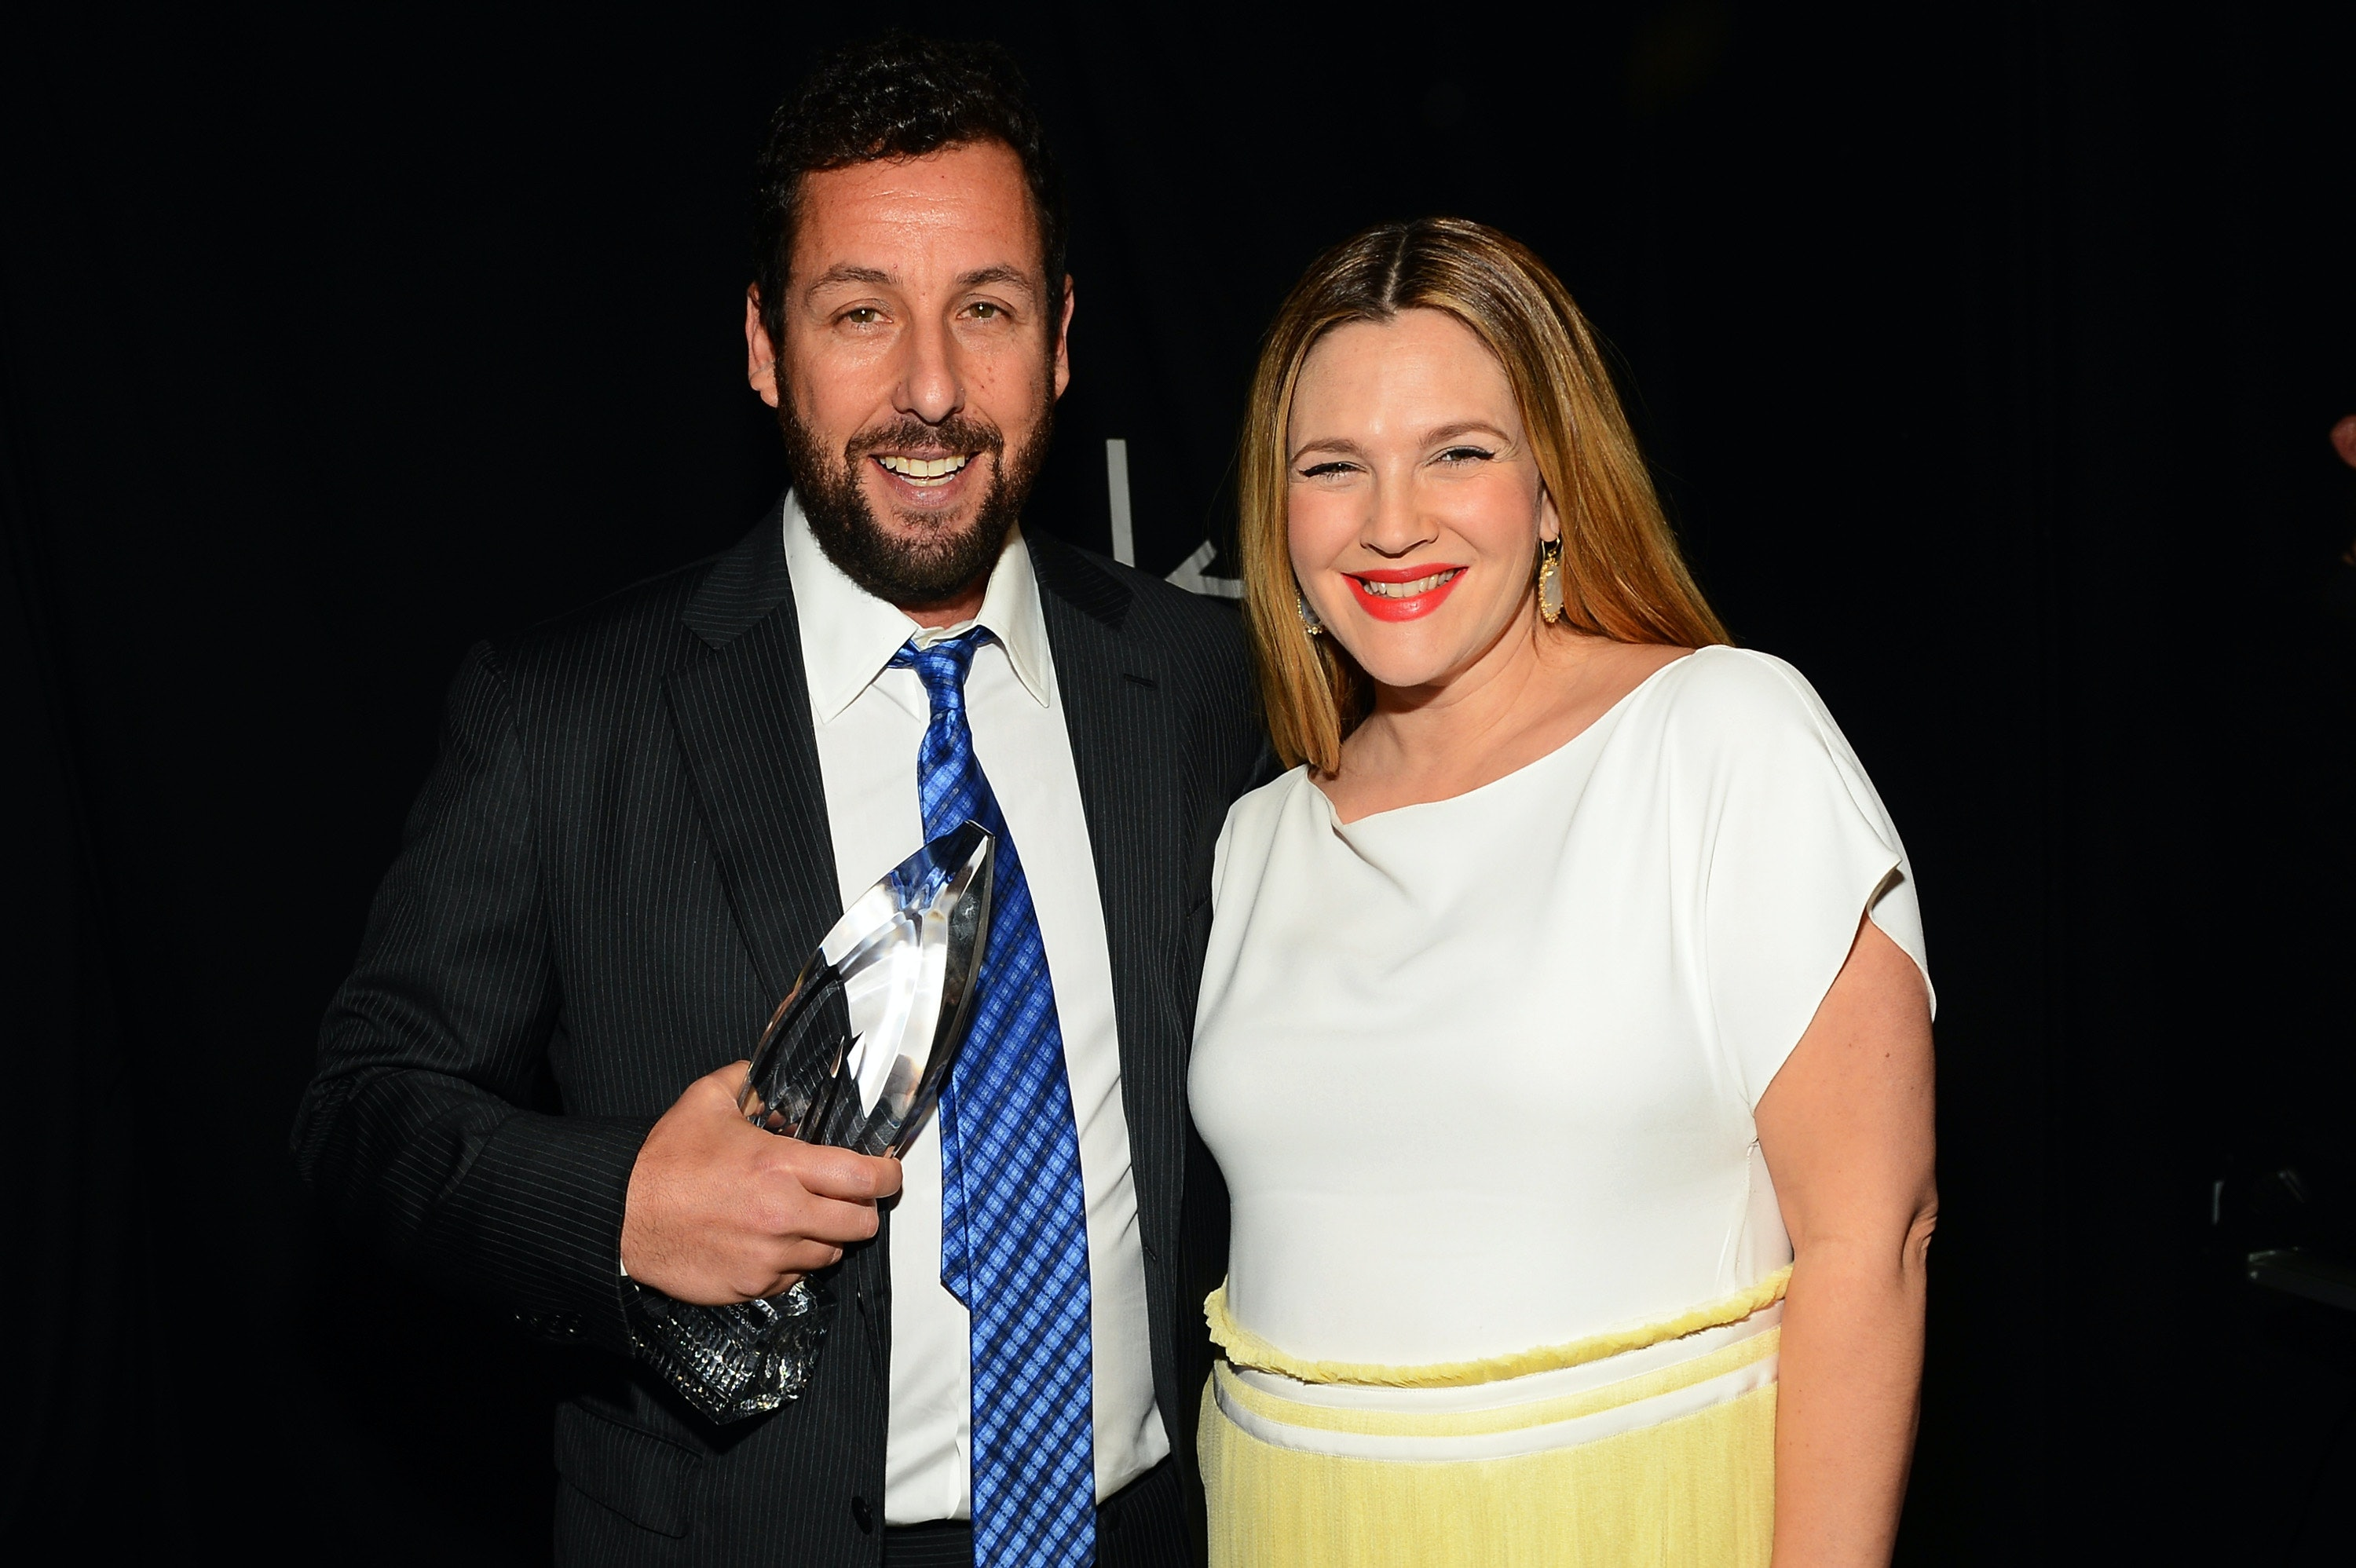 Drew Barrymore & Adam Sandler Are Planning Their Next Movie